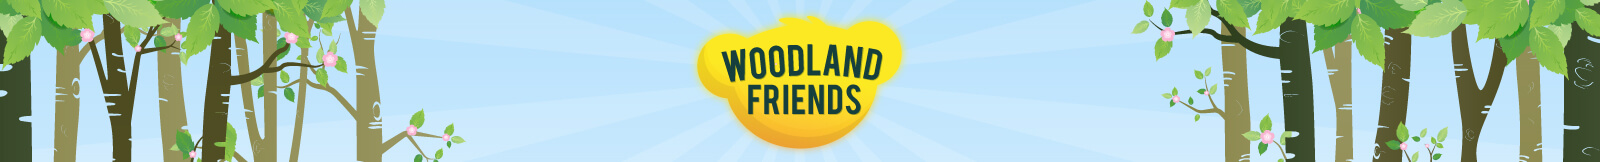 Woodland Friends March